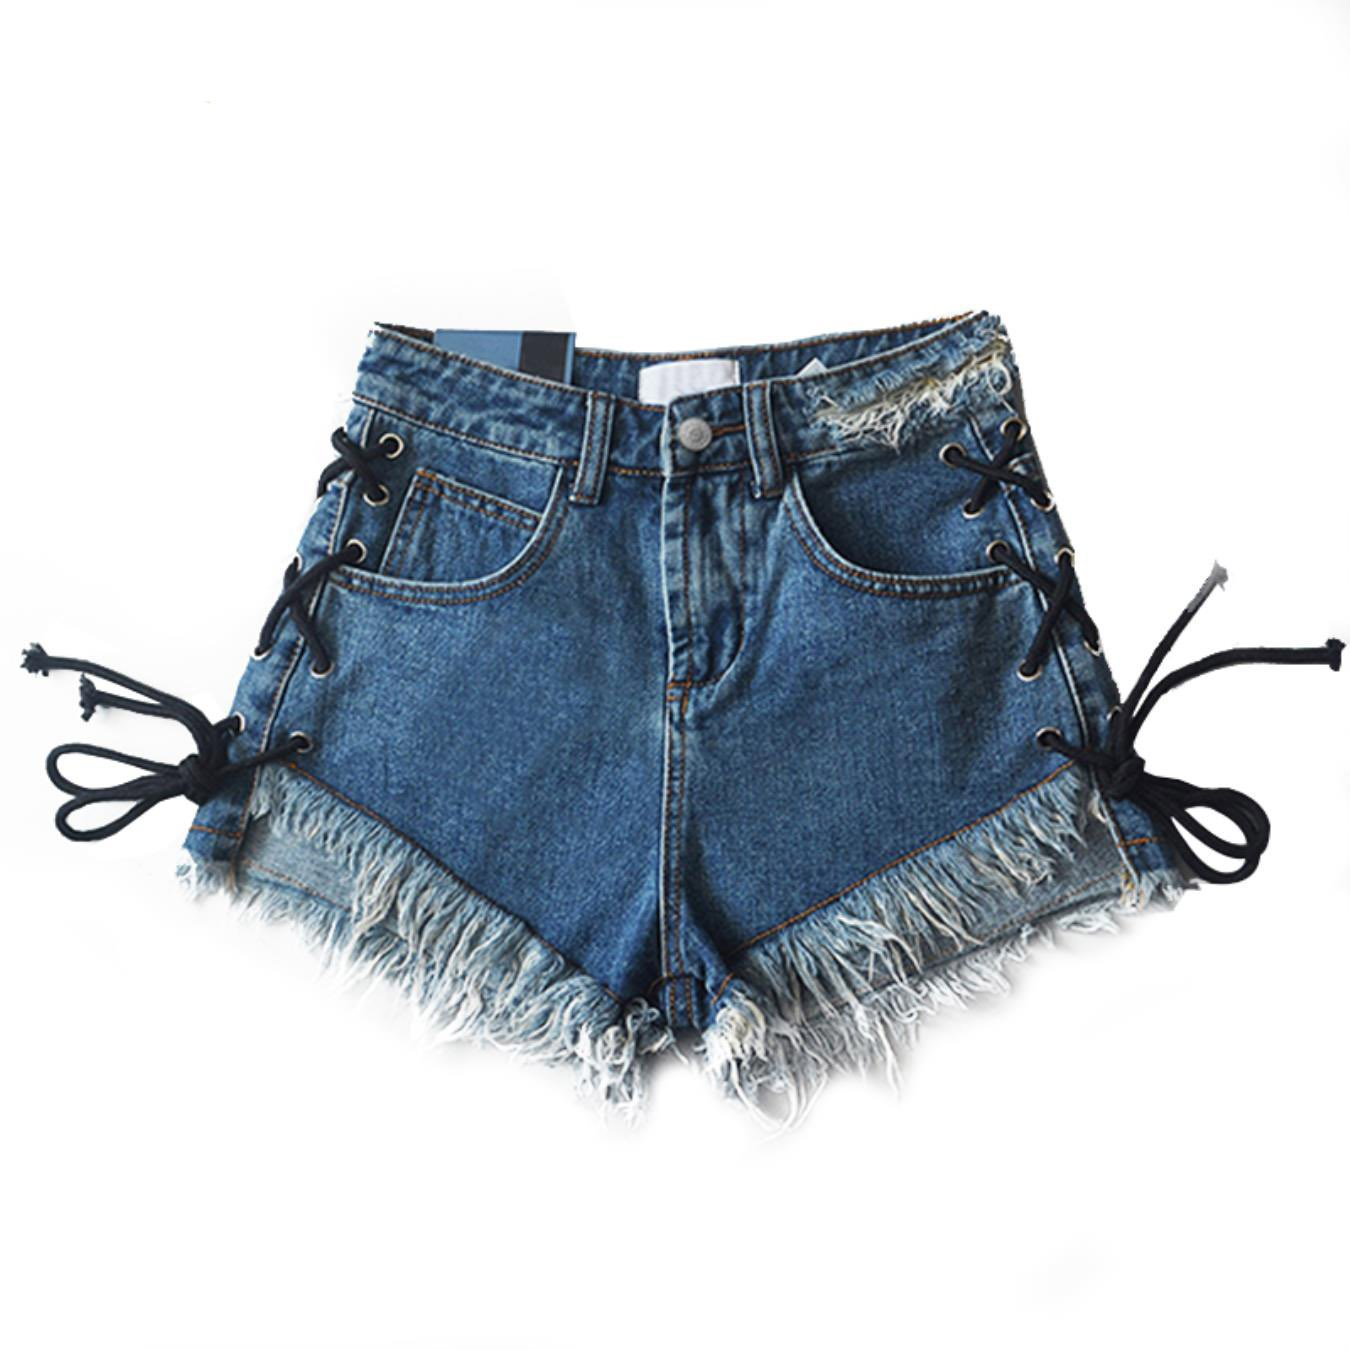 e62dd11c0a4 How To Dress Up Blue Jean Shorts – DACC